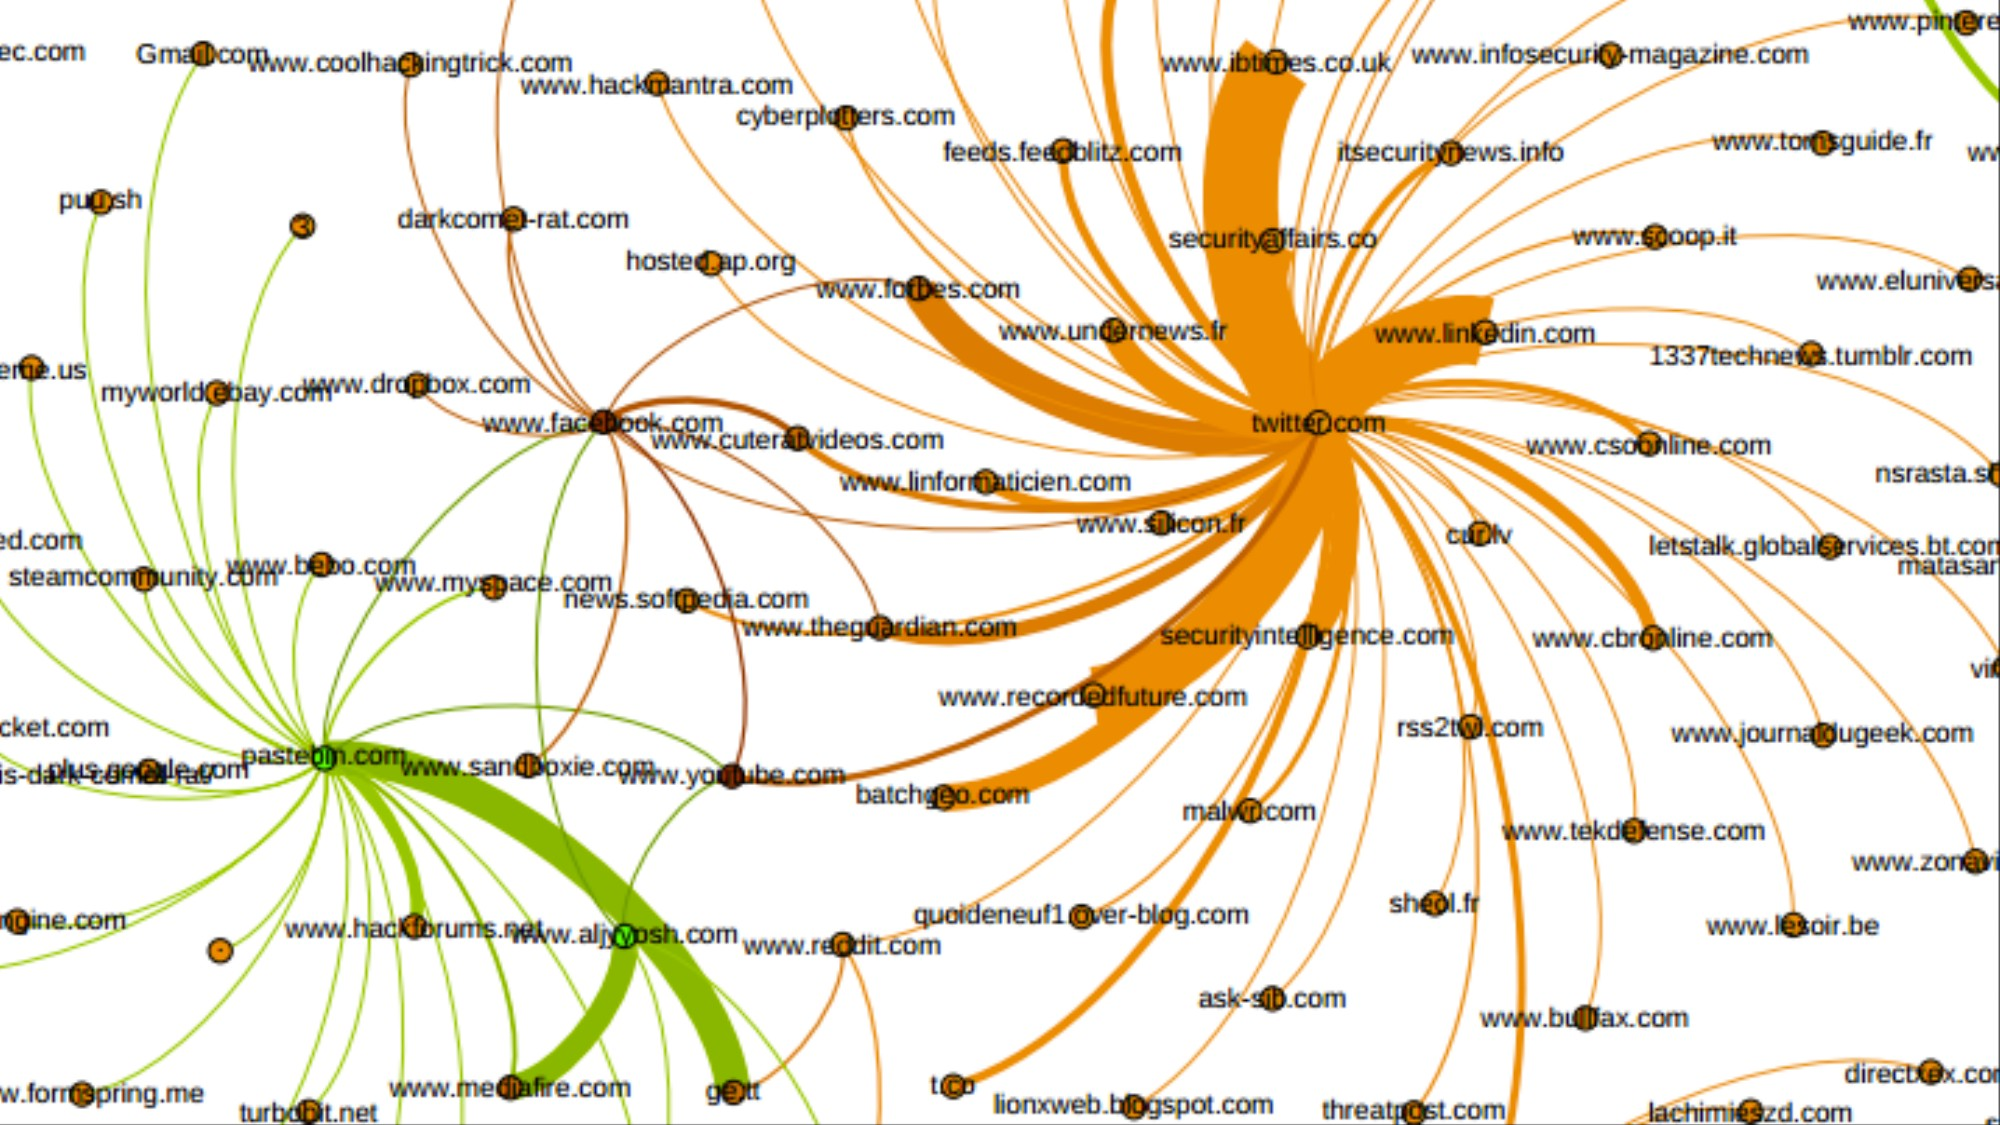 The Closest Thing to a Map of the Dark Net: Pastebin - VICE